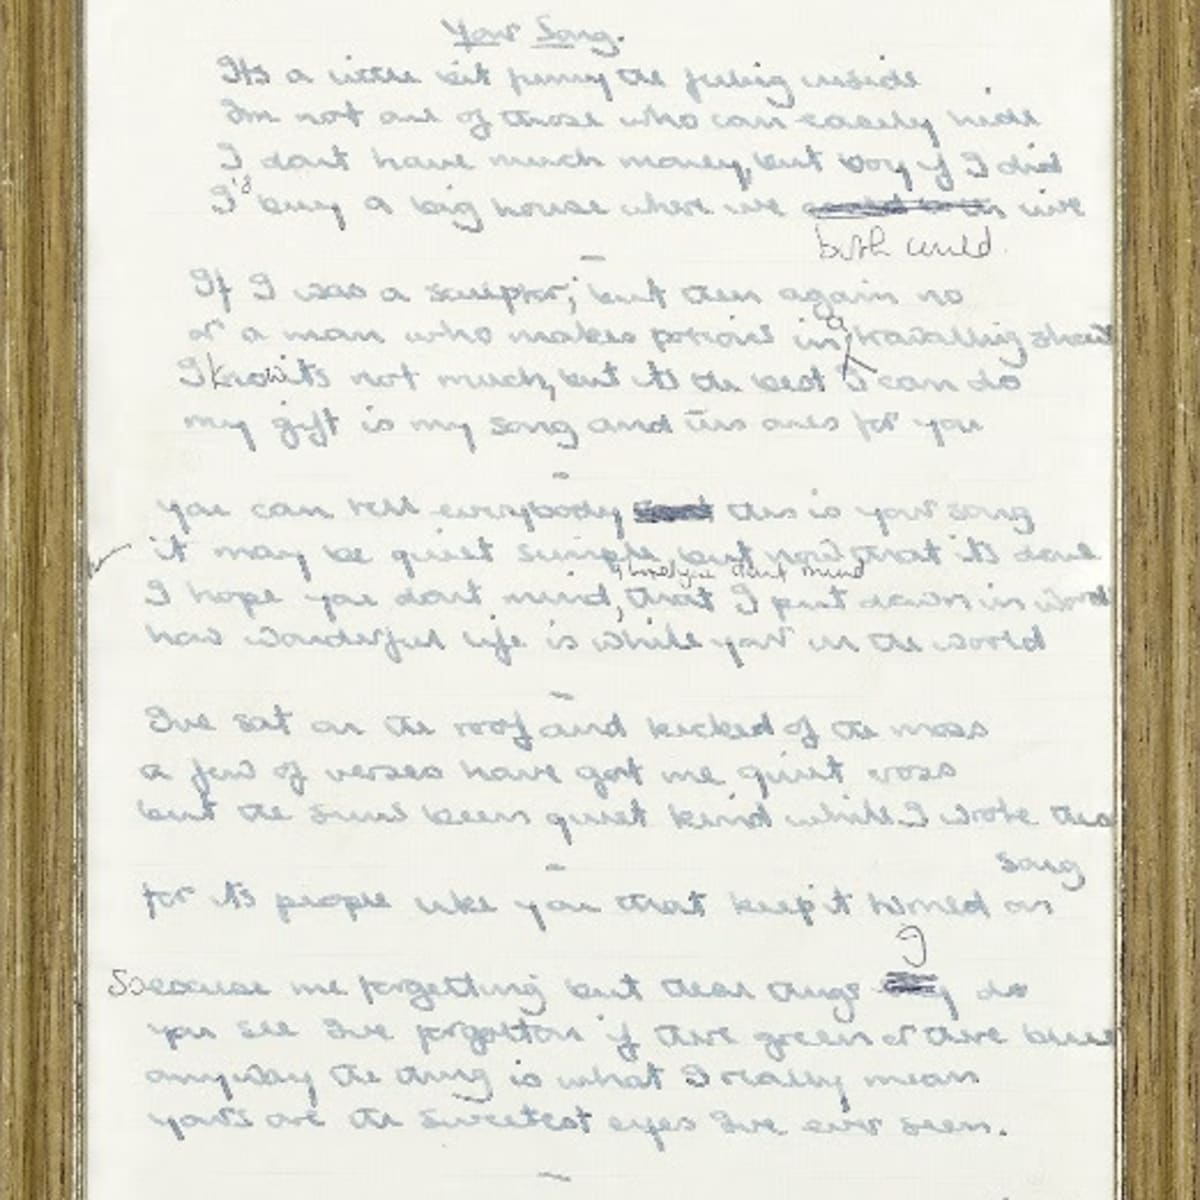 The Original Handwritten Lyrics For Elton John S Your Song Up For Sale Goldmine Magazine Record Collector Music Memorabilia